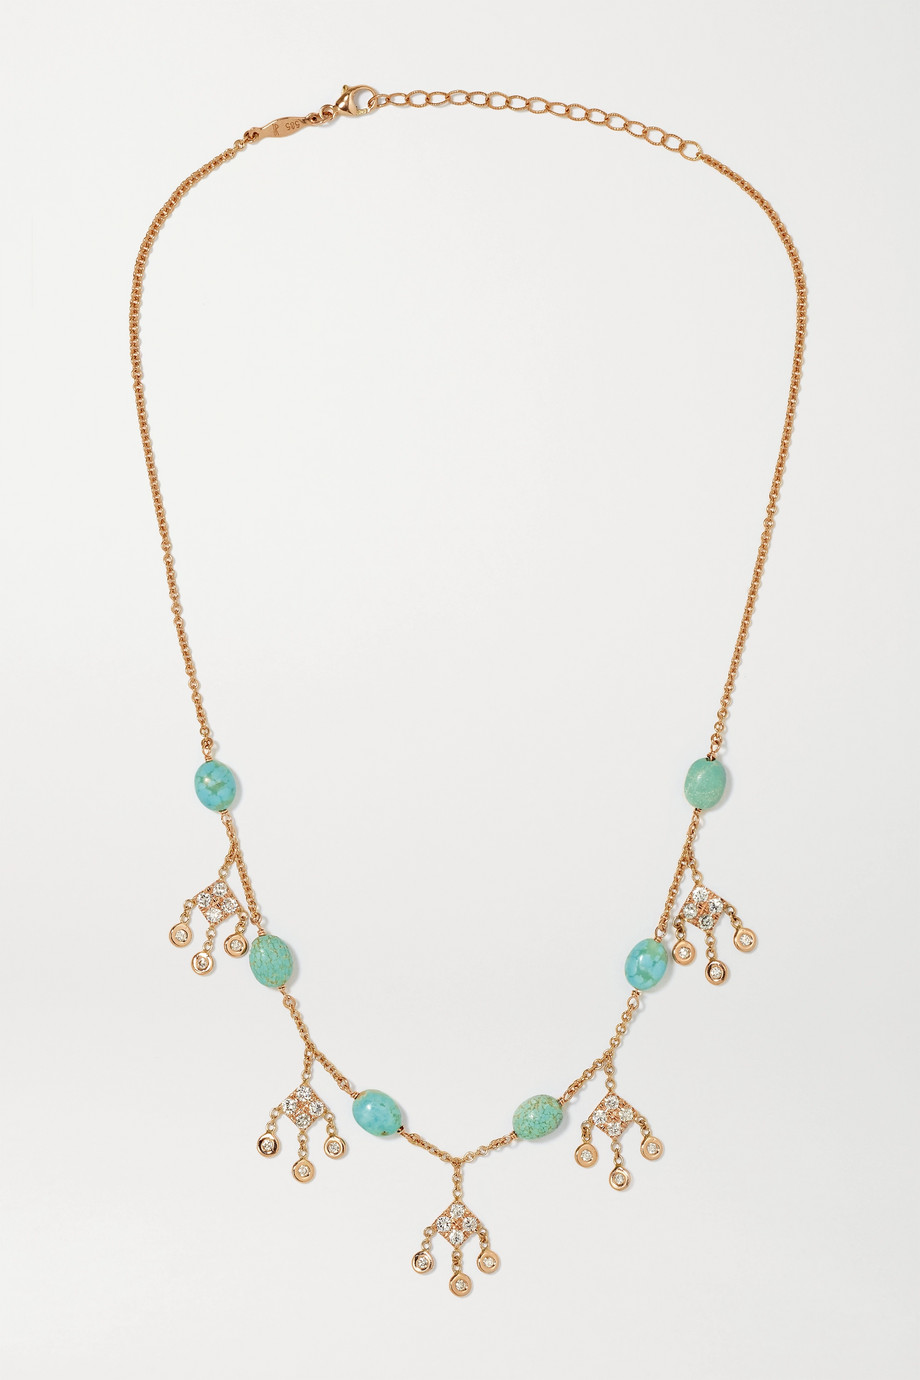 Jacquie Aiche Shaker 14-karat rose gold, turquoise and diamond necklace